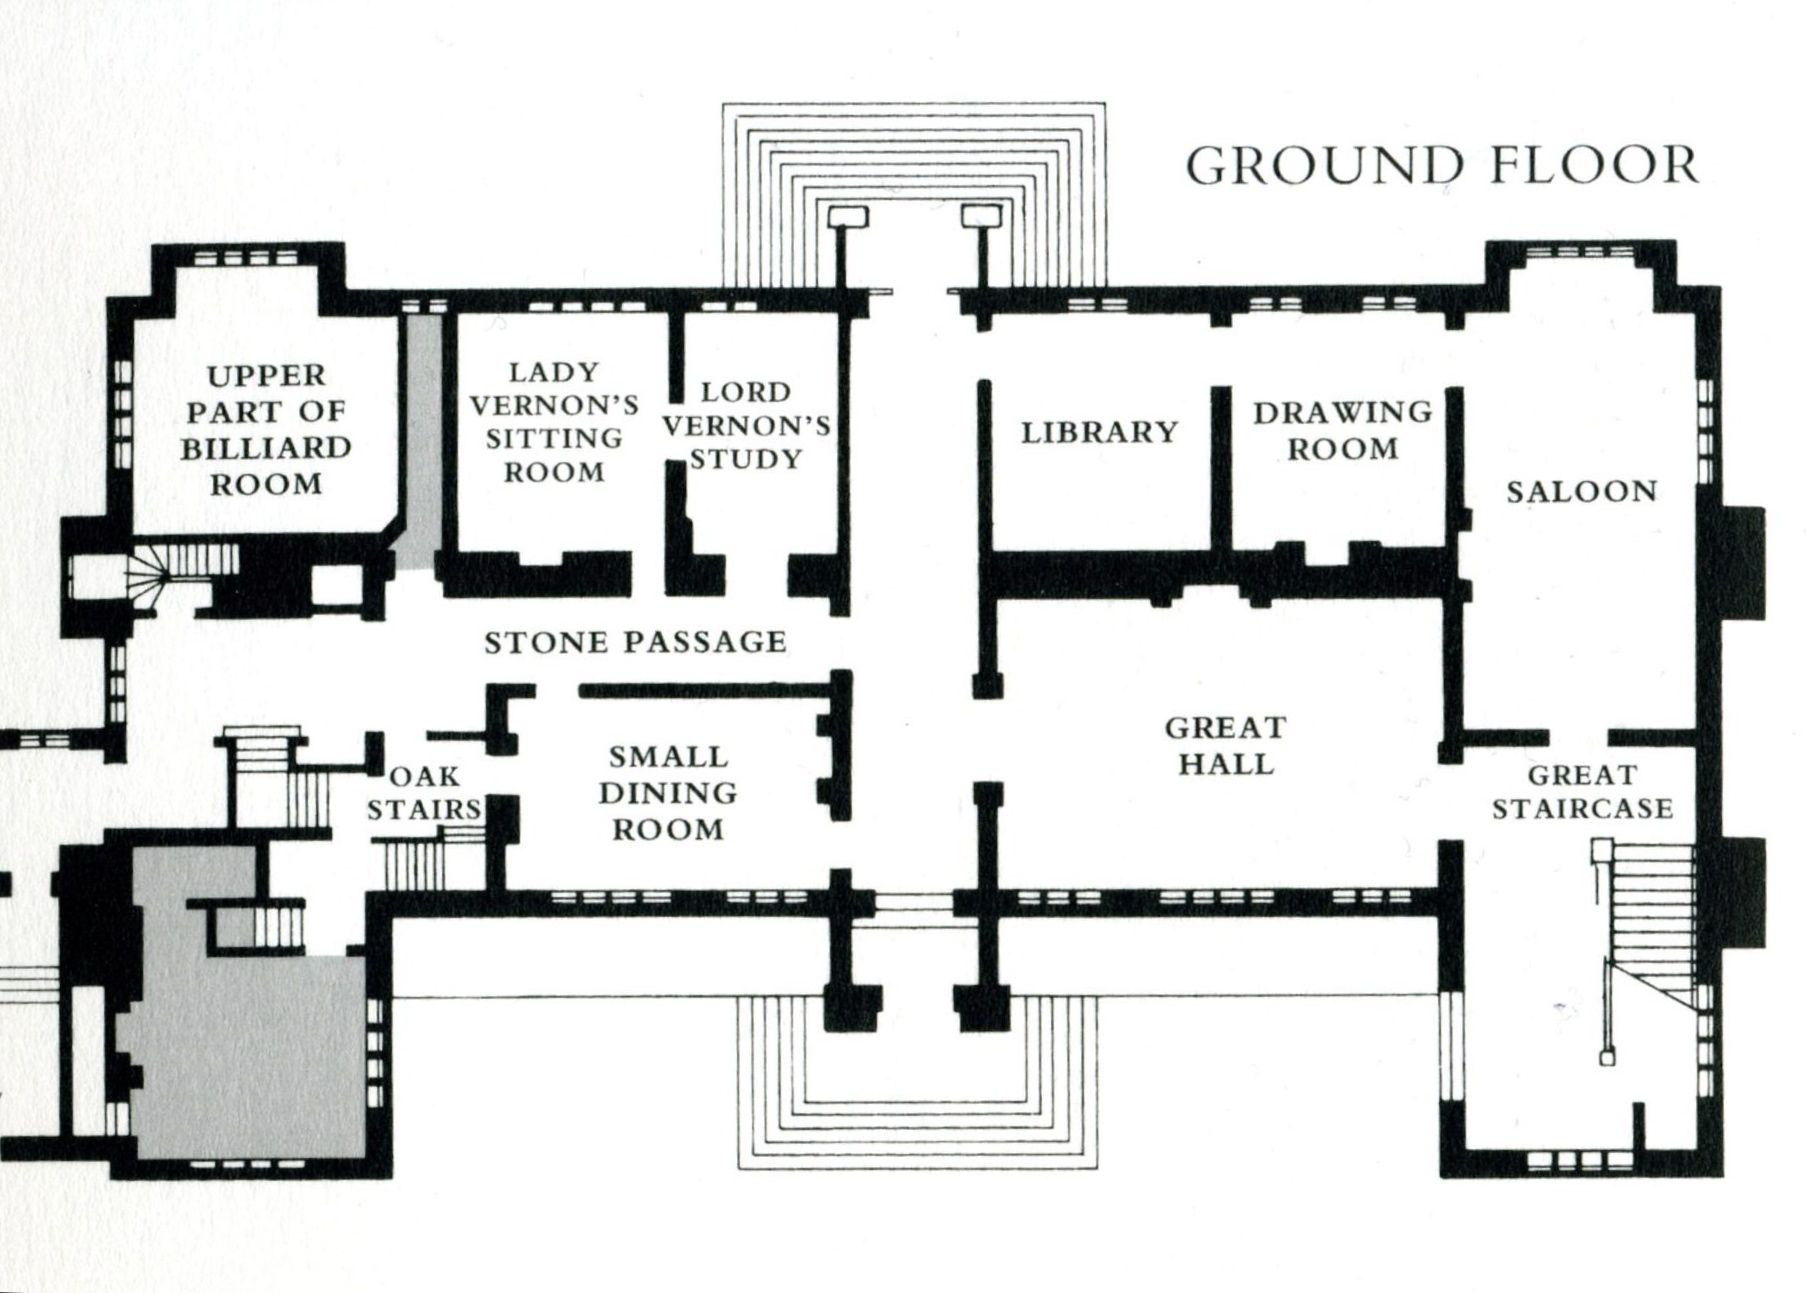 sudeley hall plan of the ground floor house plans pinterest sudeley hall plan of the ground floor